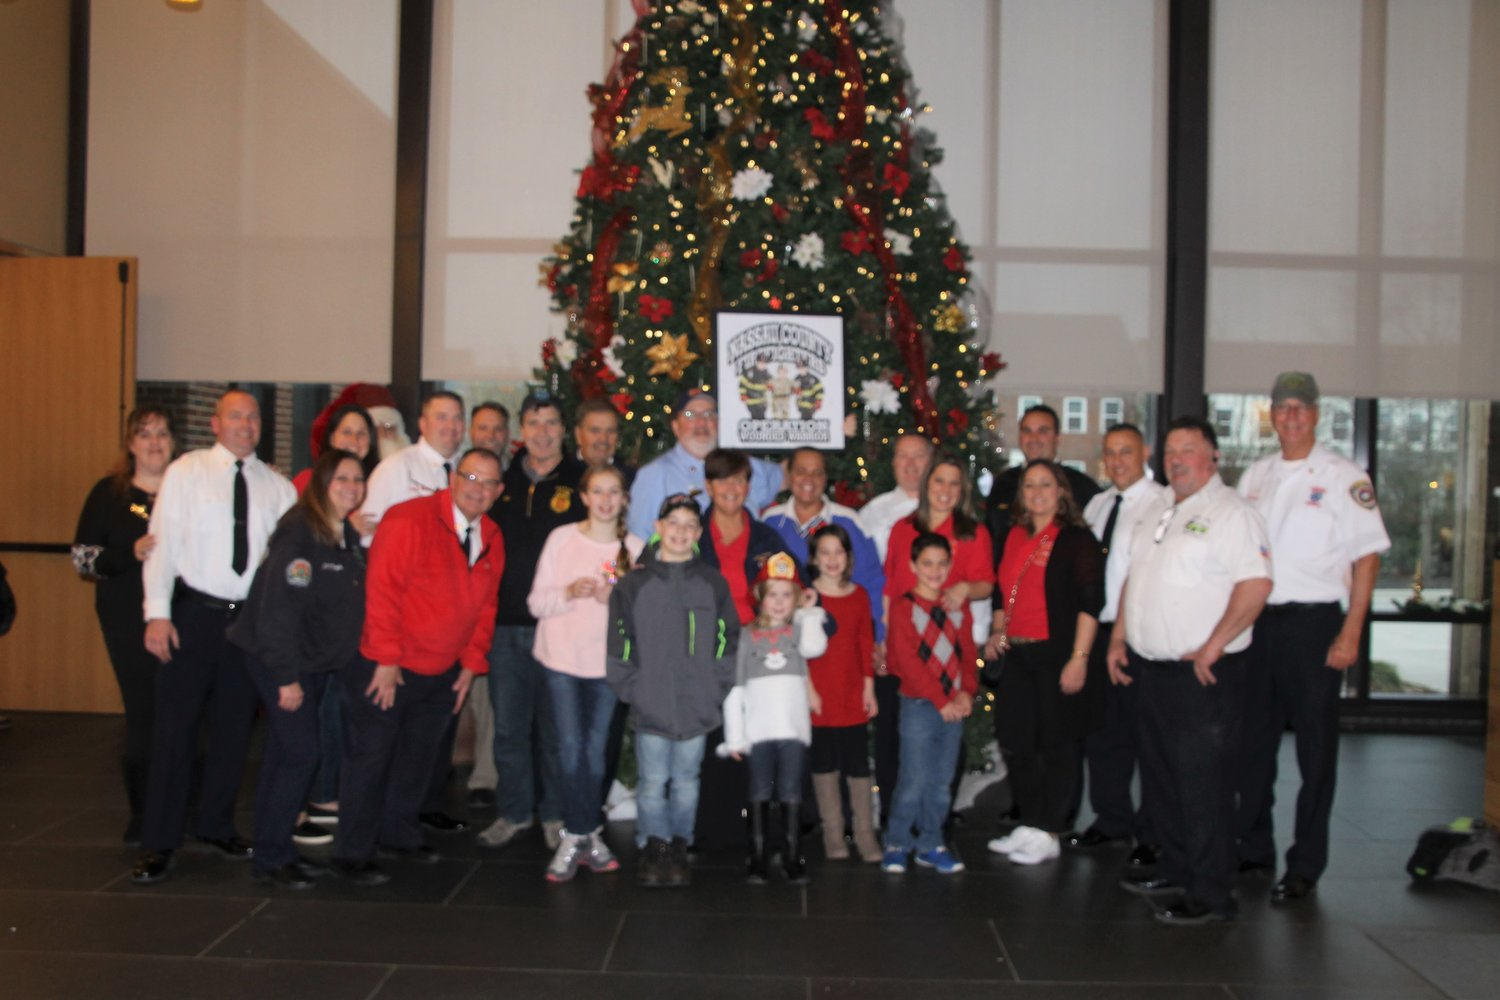 A group of Lynbrook firefighters visited wounded soldiers in Virginia and gathered around a Christmas tree.